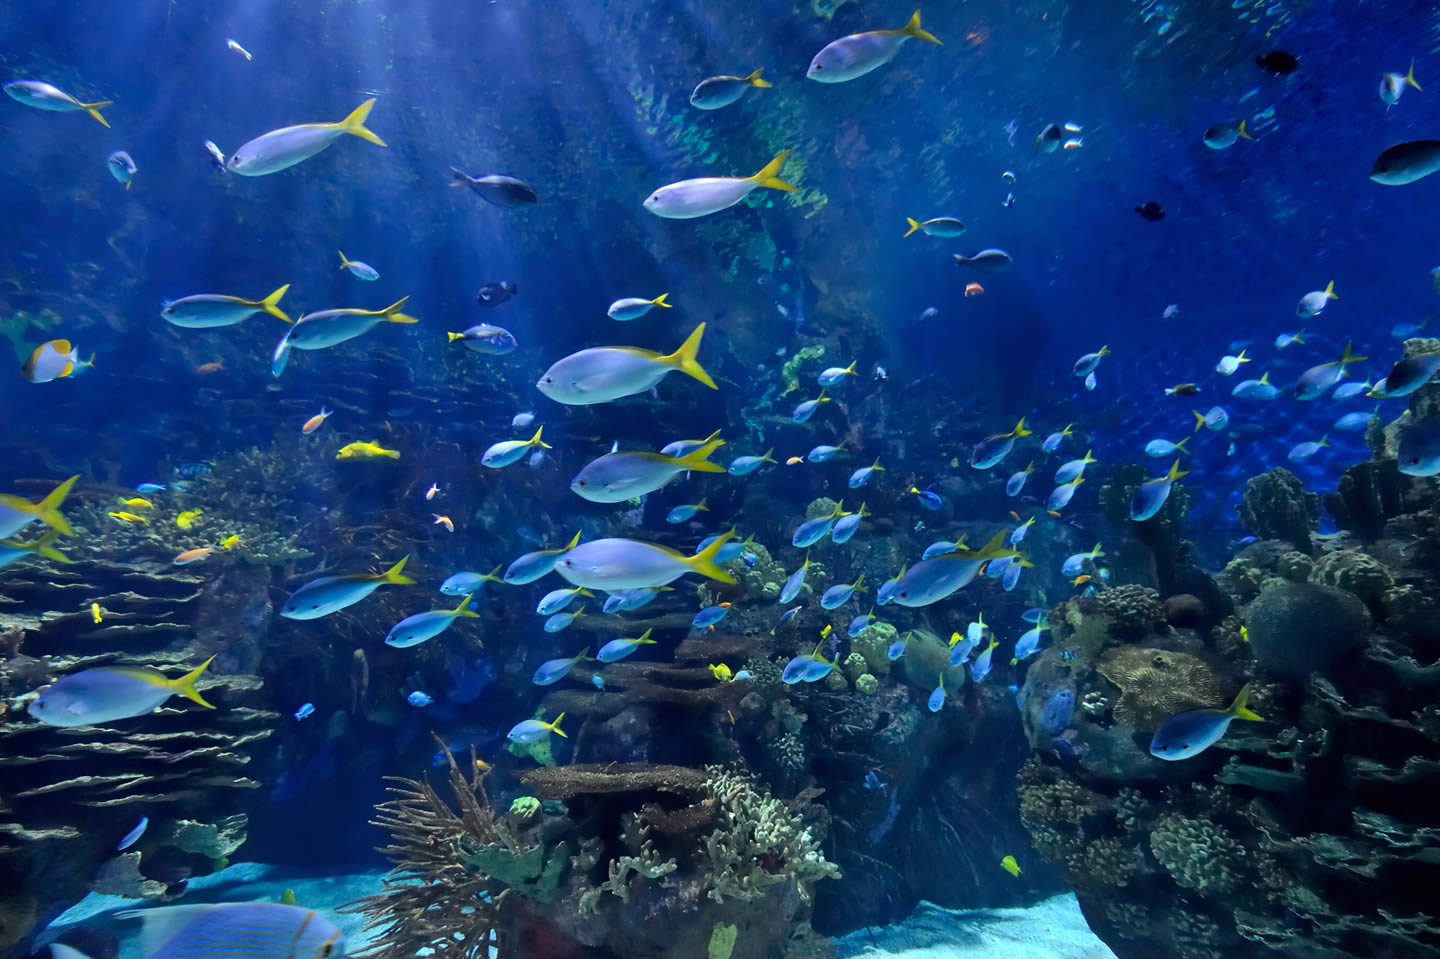 Aquarium Fish in a Flock